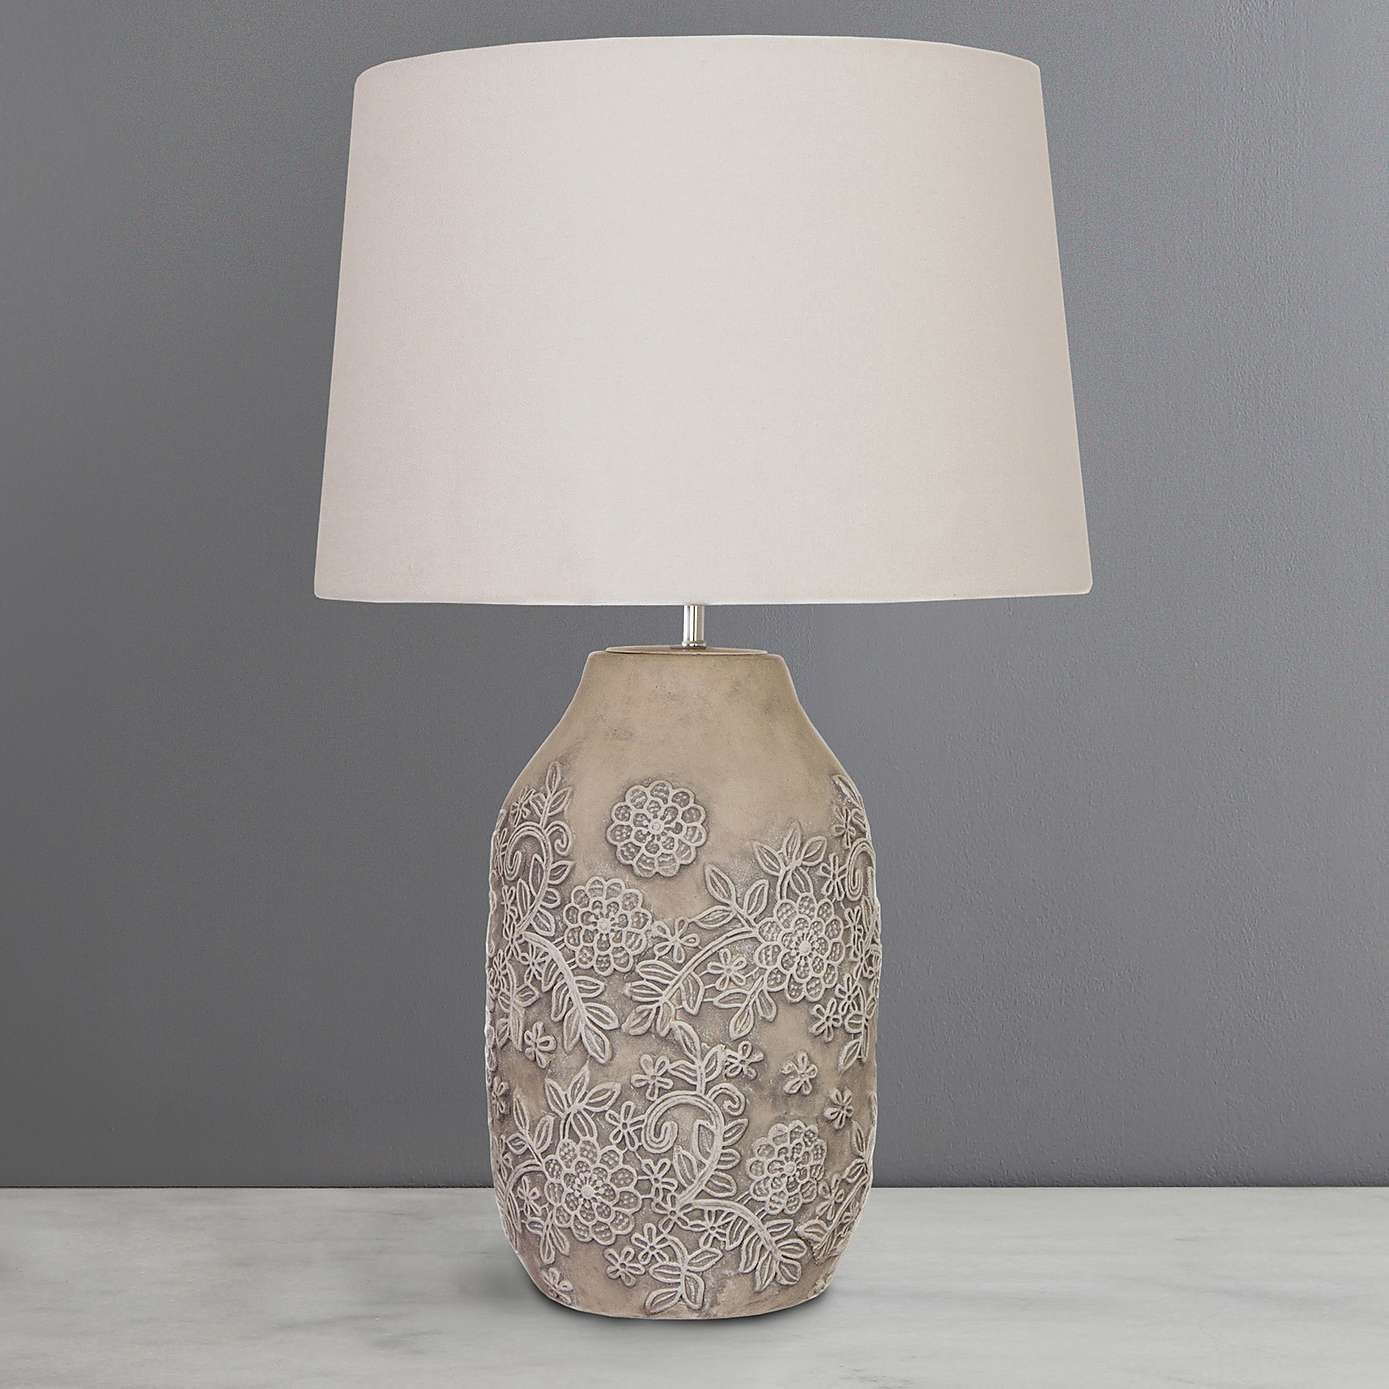 Yvette ceramic table lamp dunelm lighting pinterest handmade with intricate embossed floral patterns over a ceramic base this grey table lamp features a fresh white lamp shade geotapseo Choice Image